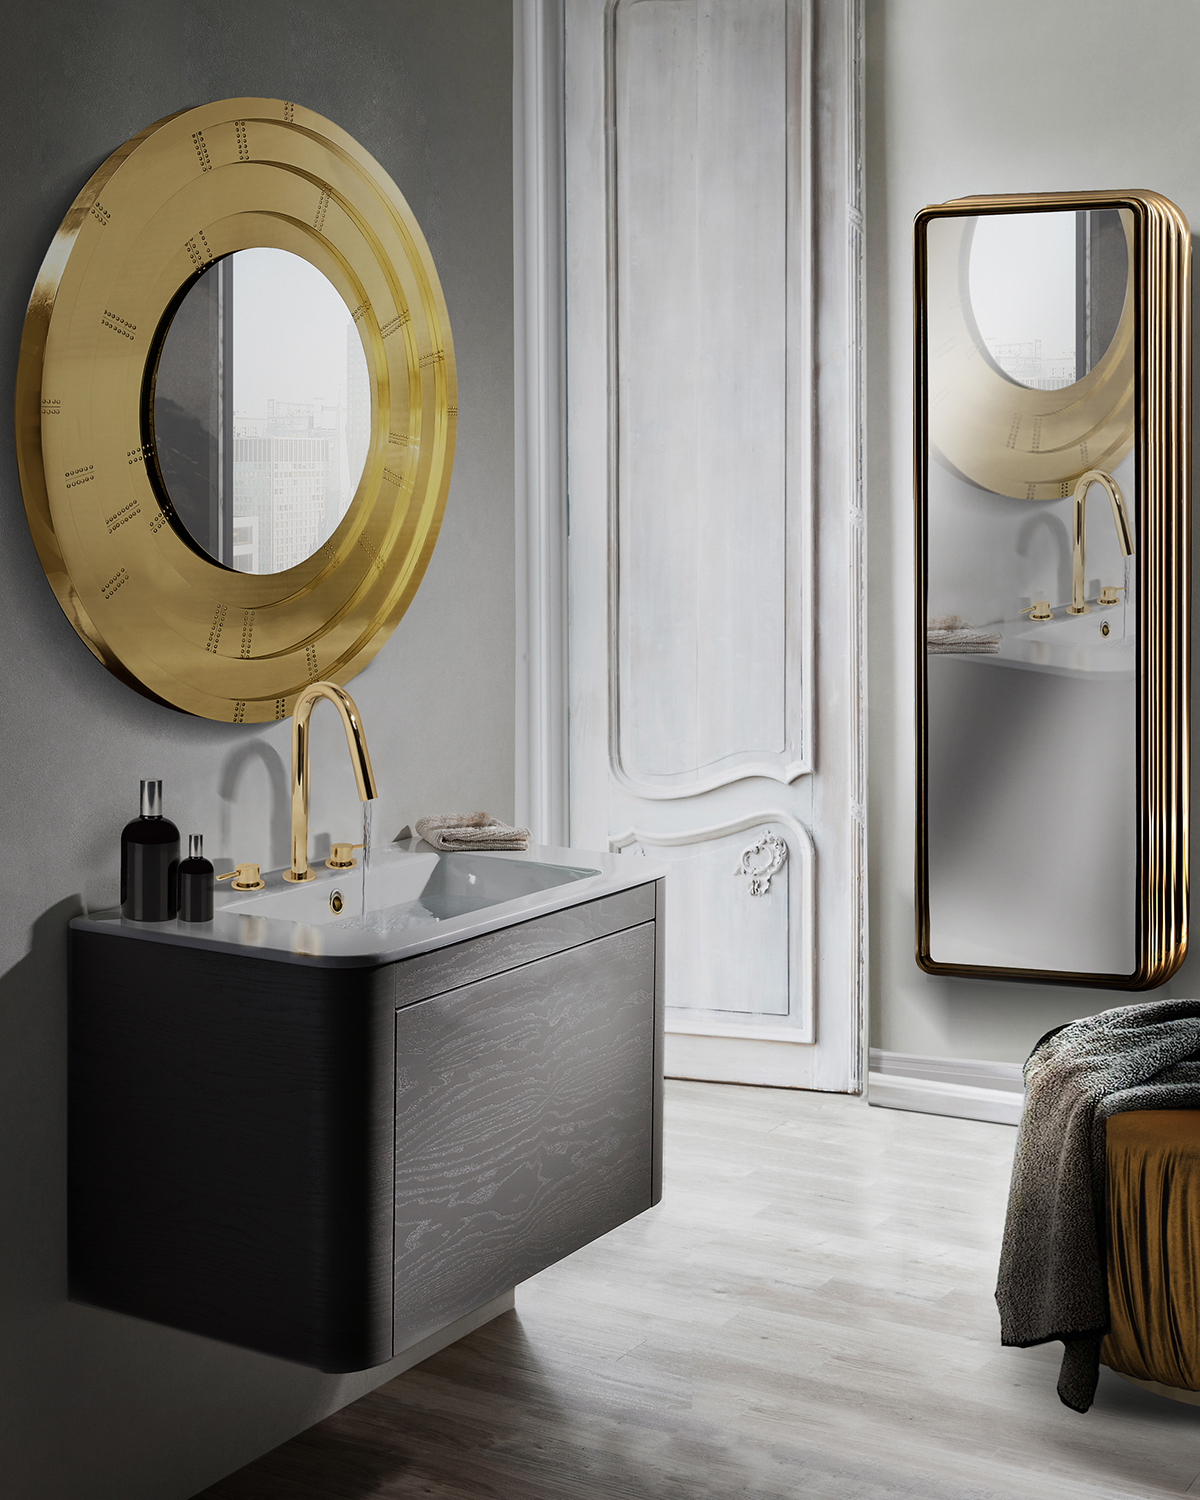 bathroom, golden bathroom, gold,maison valentina, bathub, mirror, rug, tap, bathroom decoration, bathroom decor bathroom 5 Ideas to Add a Touch of Gold to Your Bathroom 5 ideas to add a touch of gold to your bathroom 7